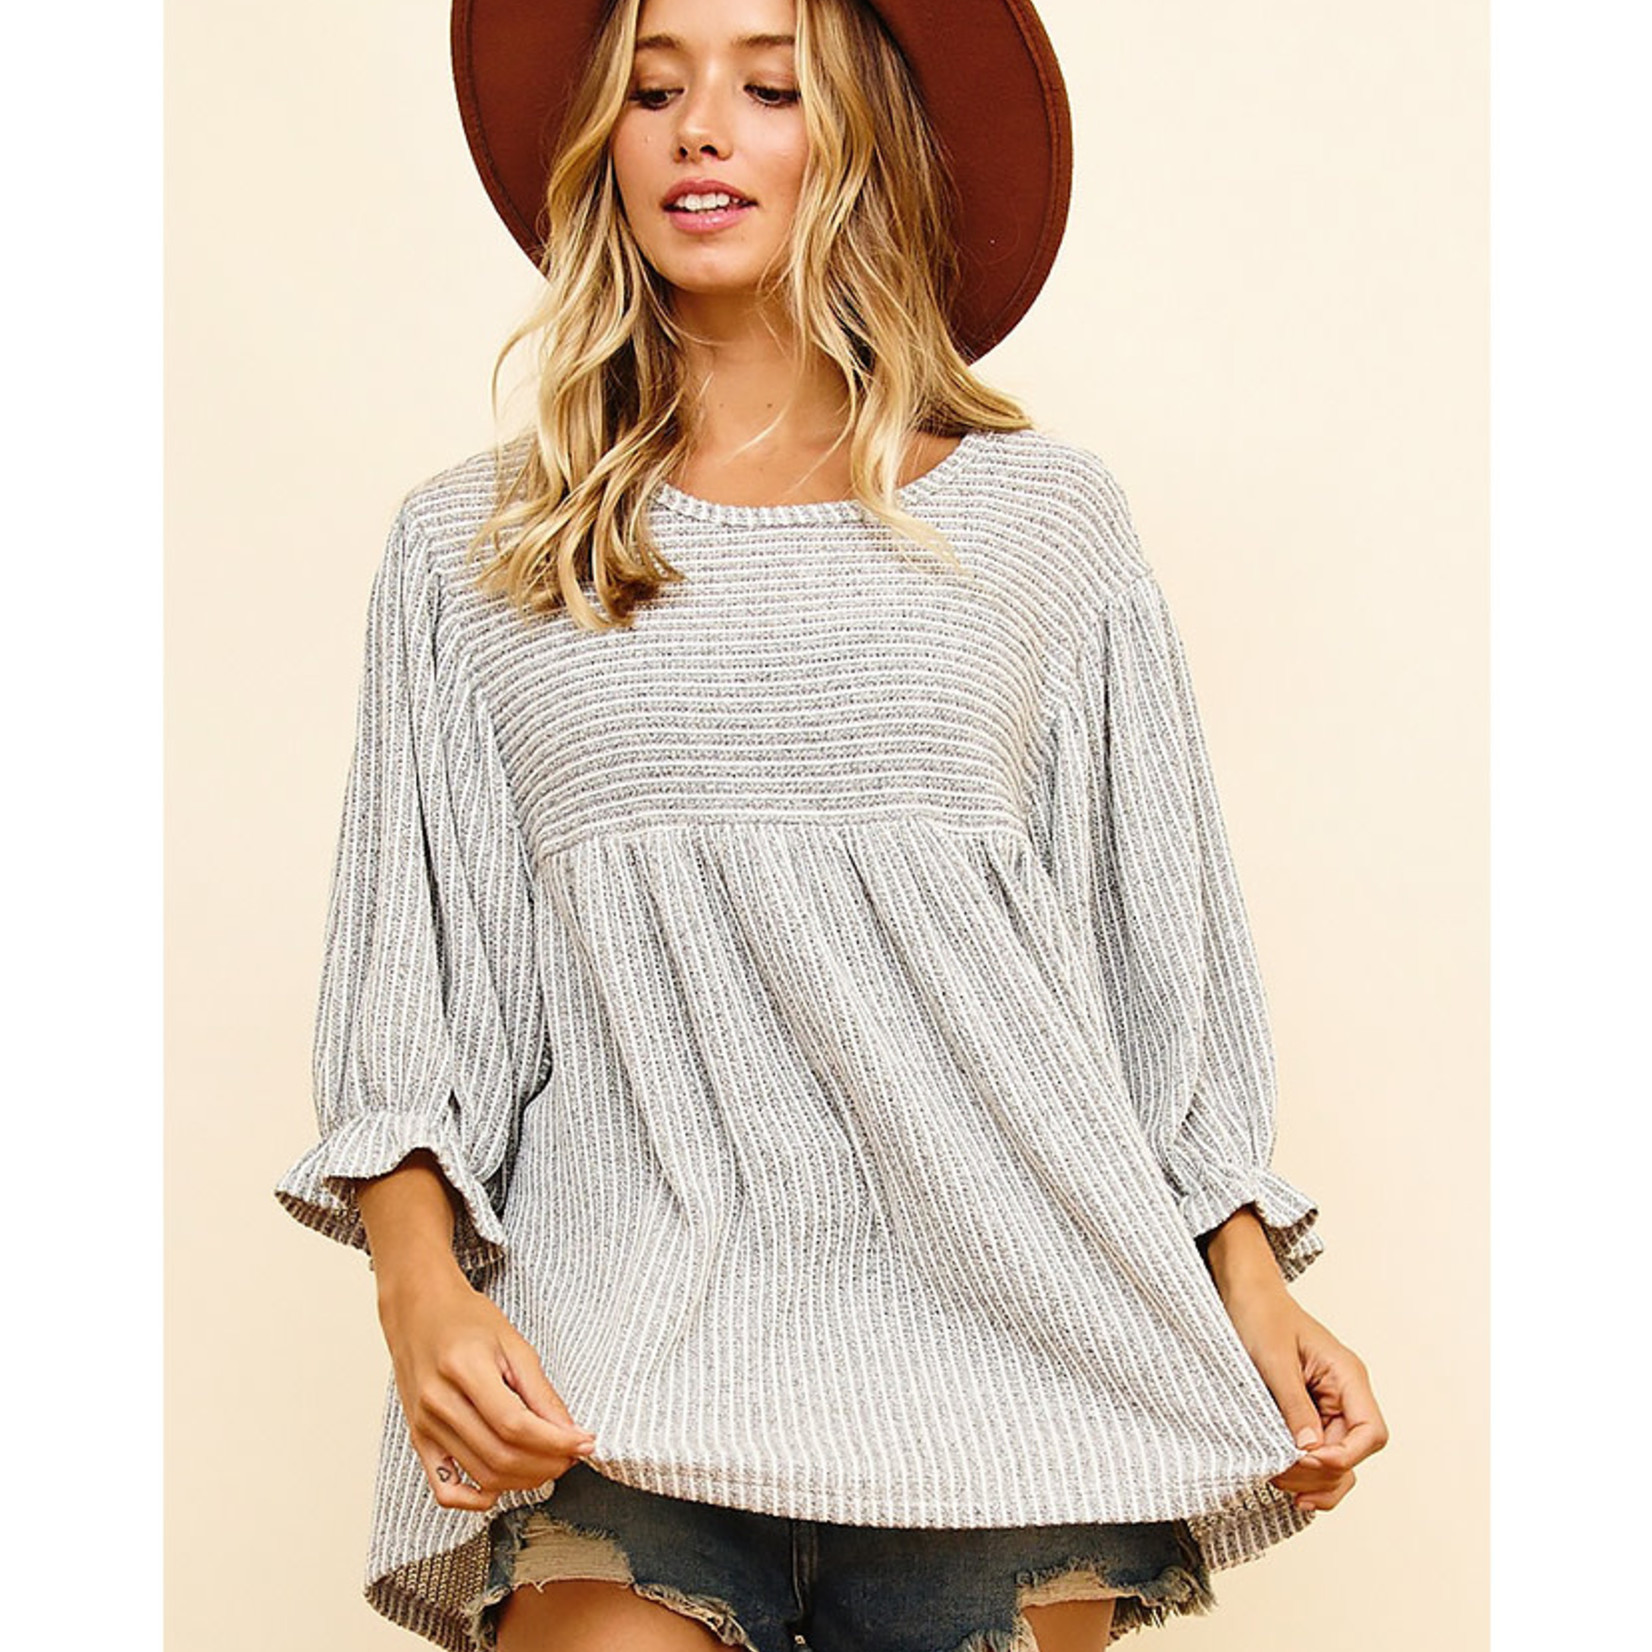 Ces Femme Ruffle My Feathers Baby Doll Sweater